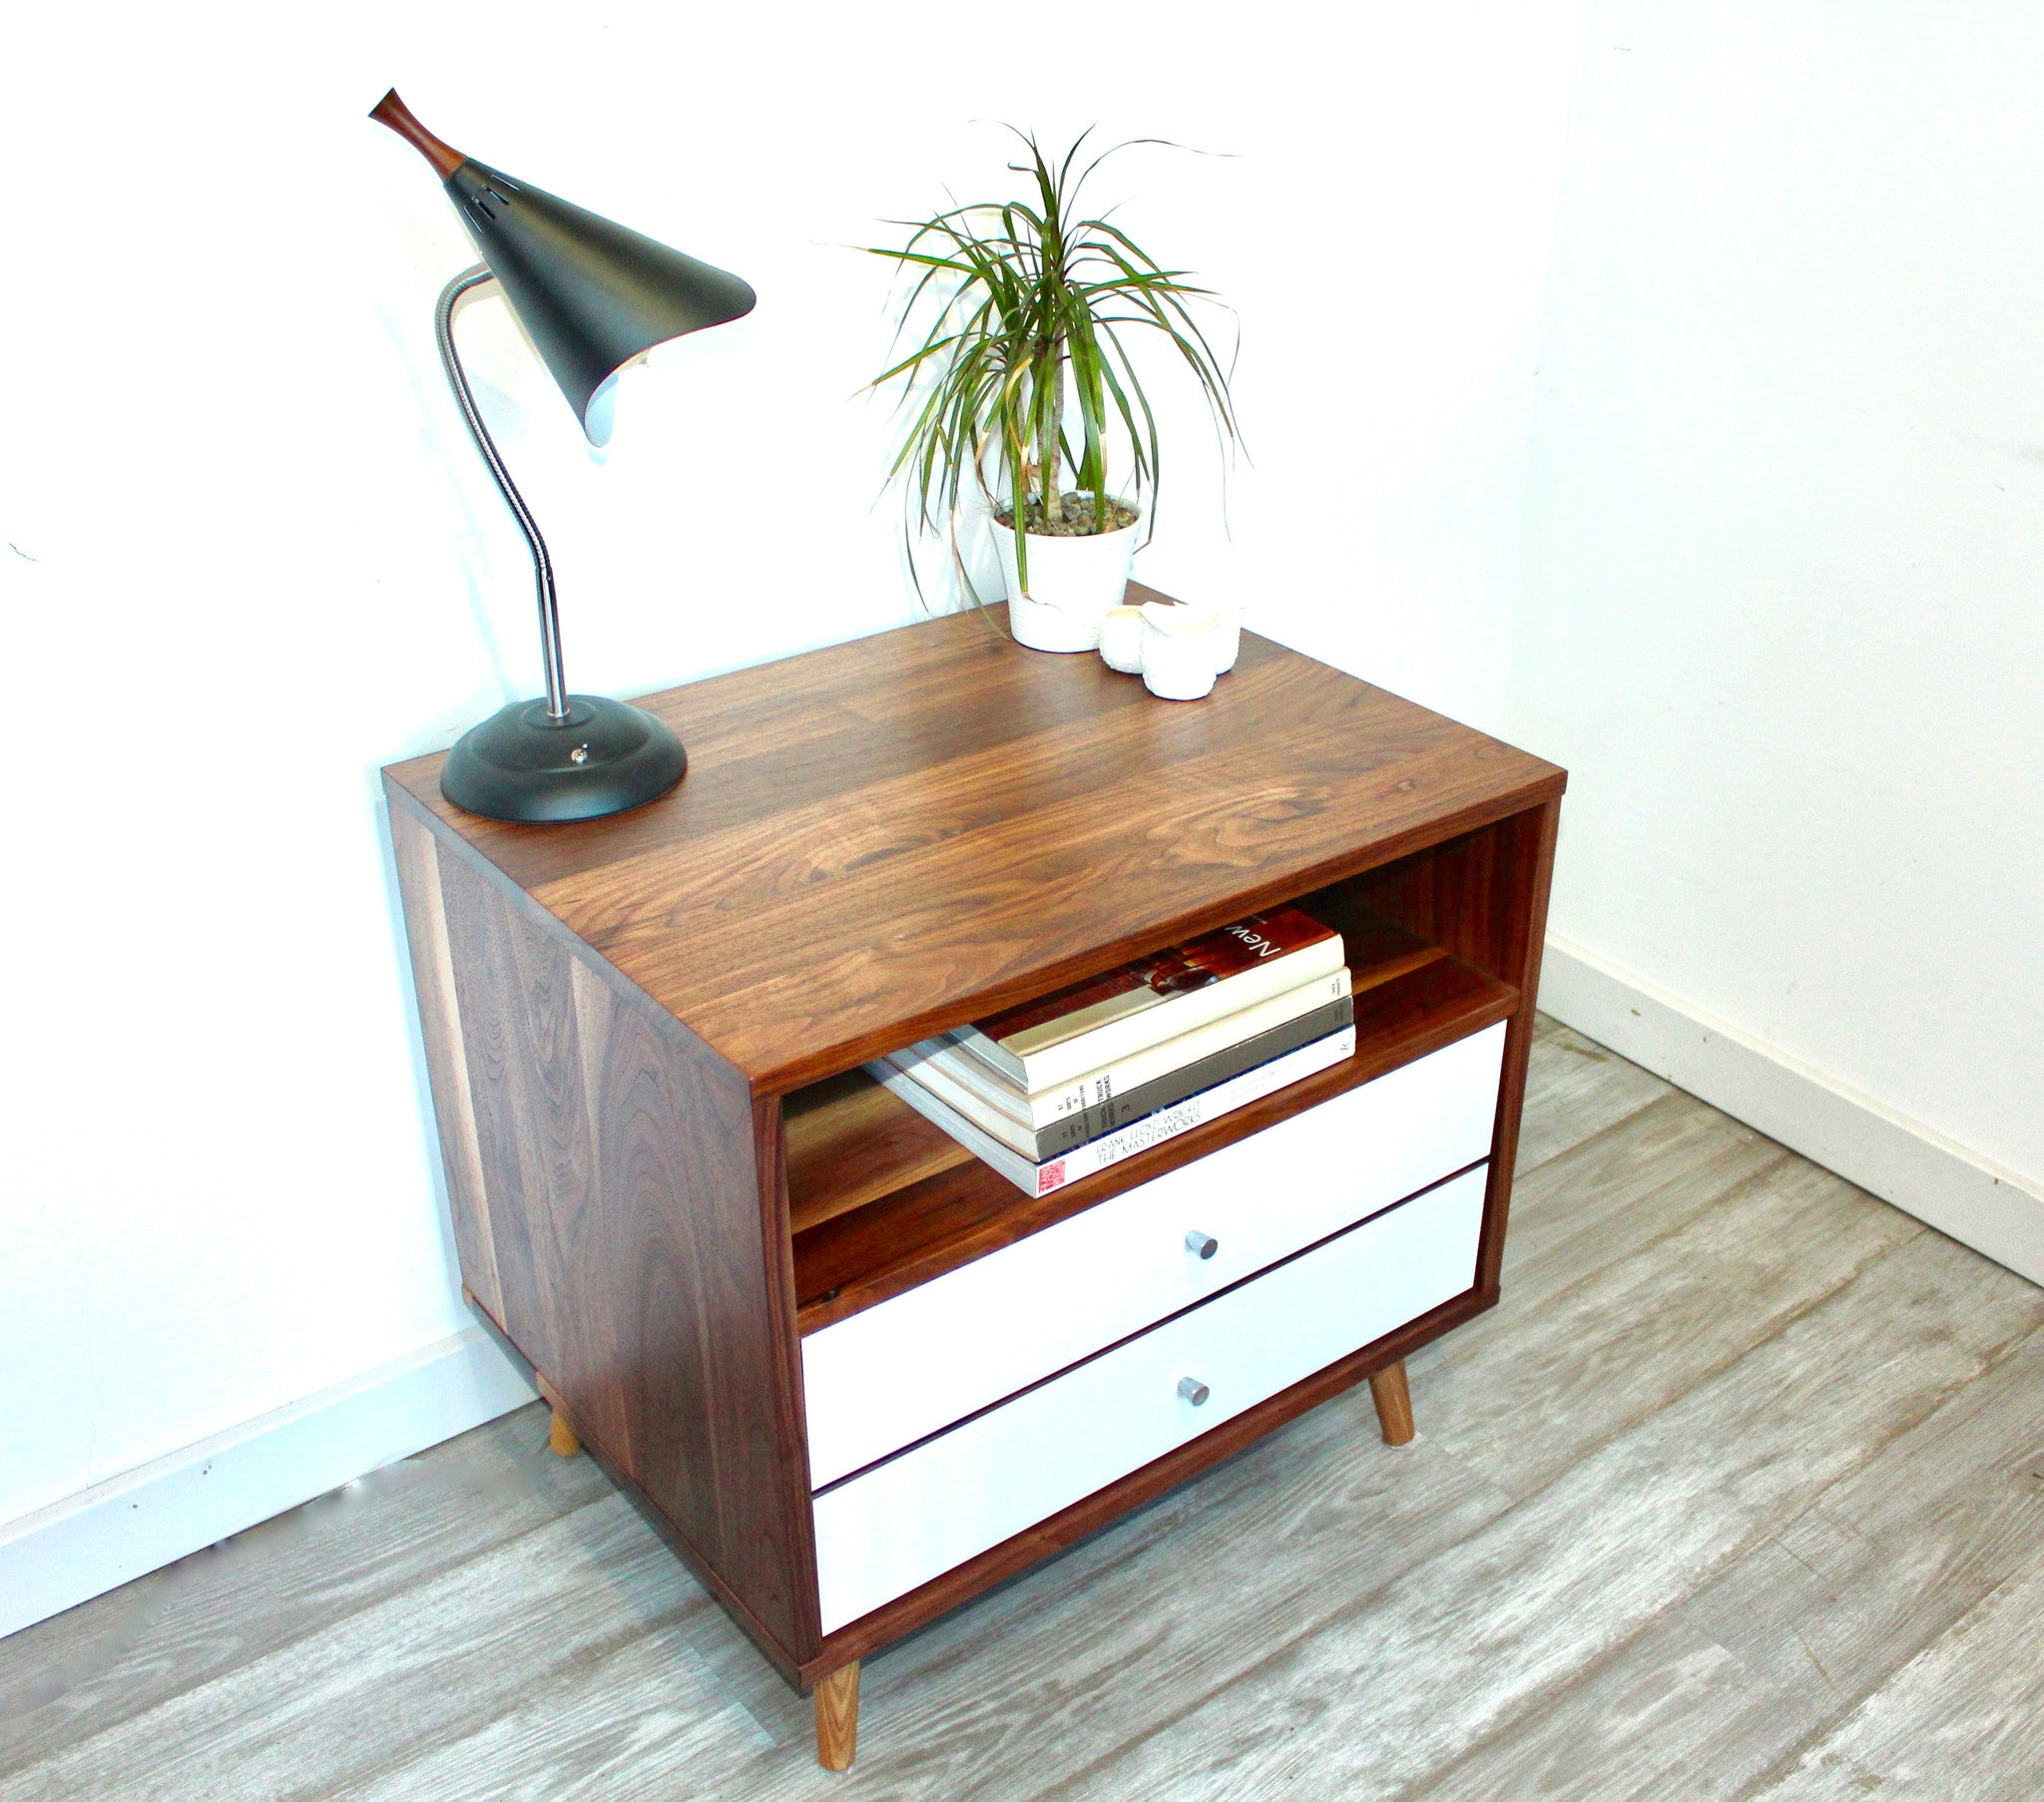 Mid Century Bedside Table with Two Drawers - JeremiahCollection - 2